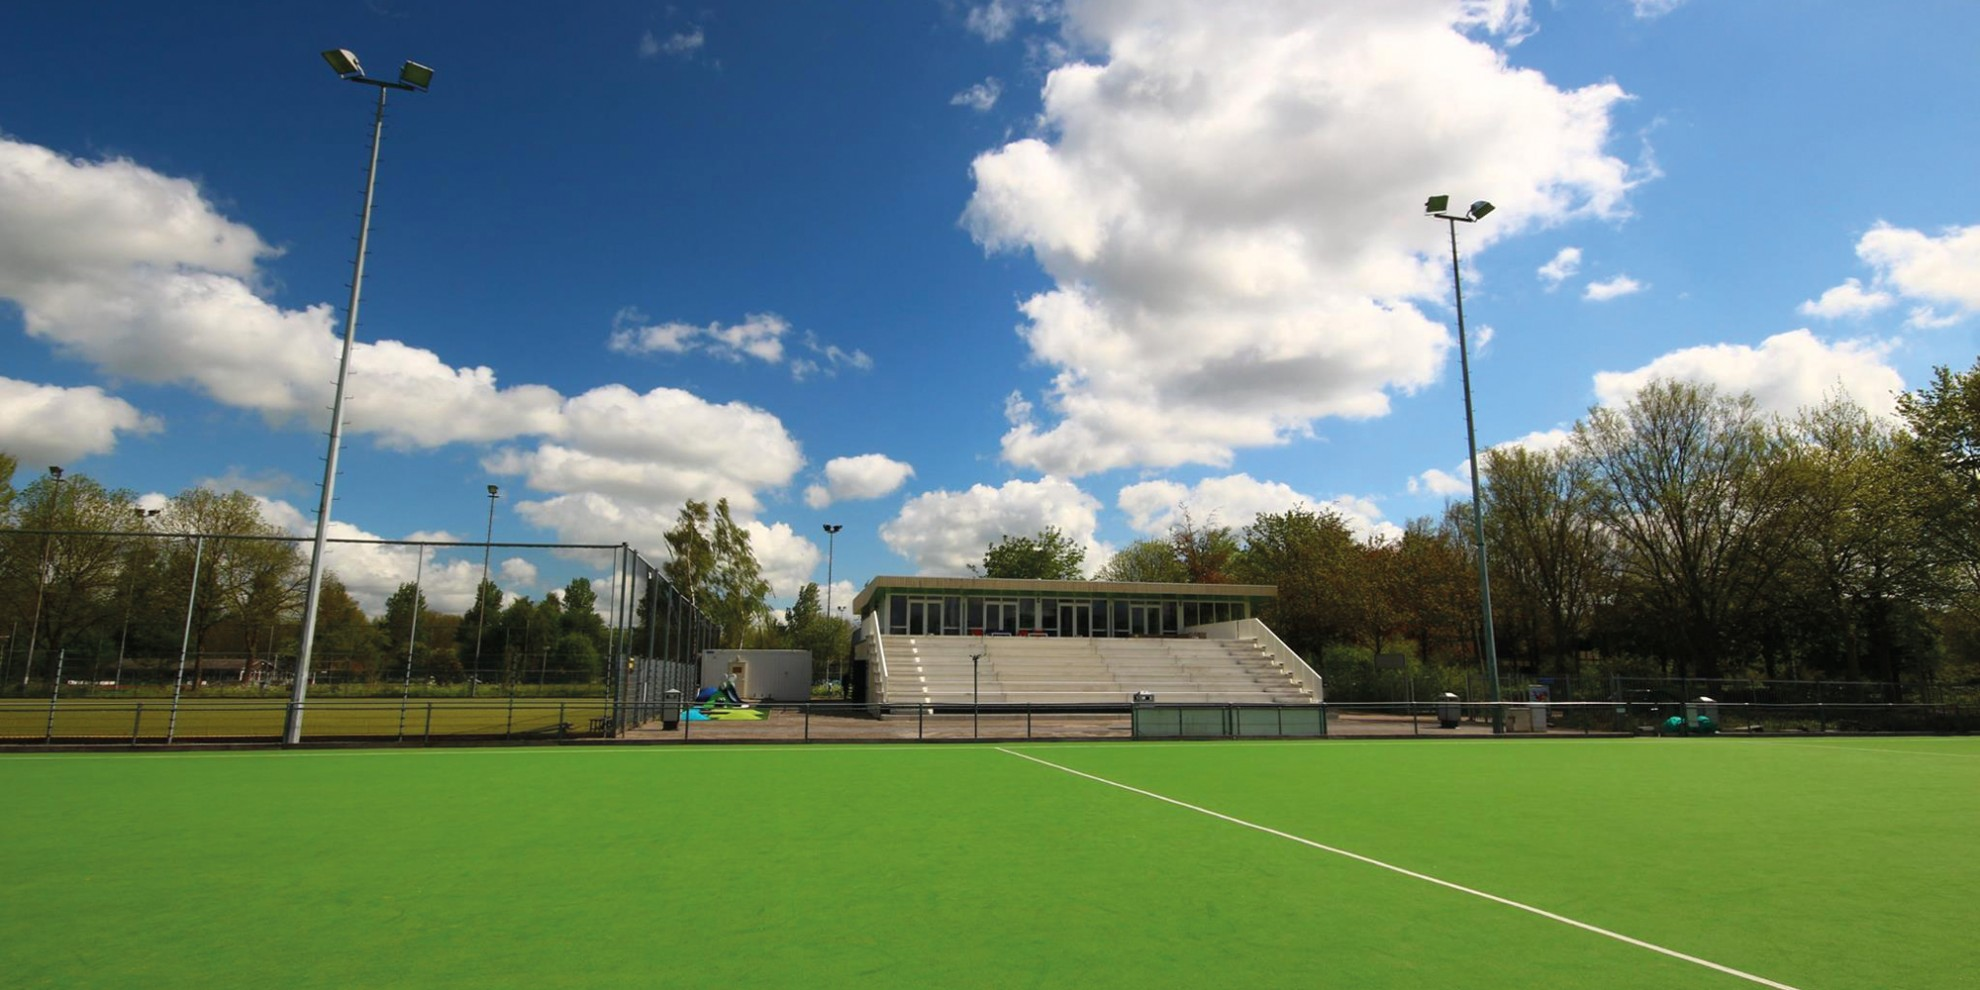 Goudse Mixed Hockey Club (GMHC)